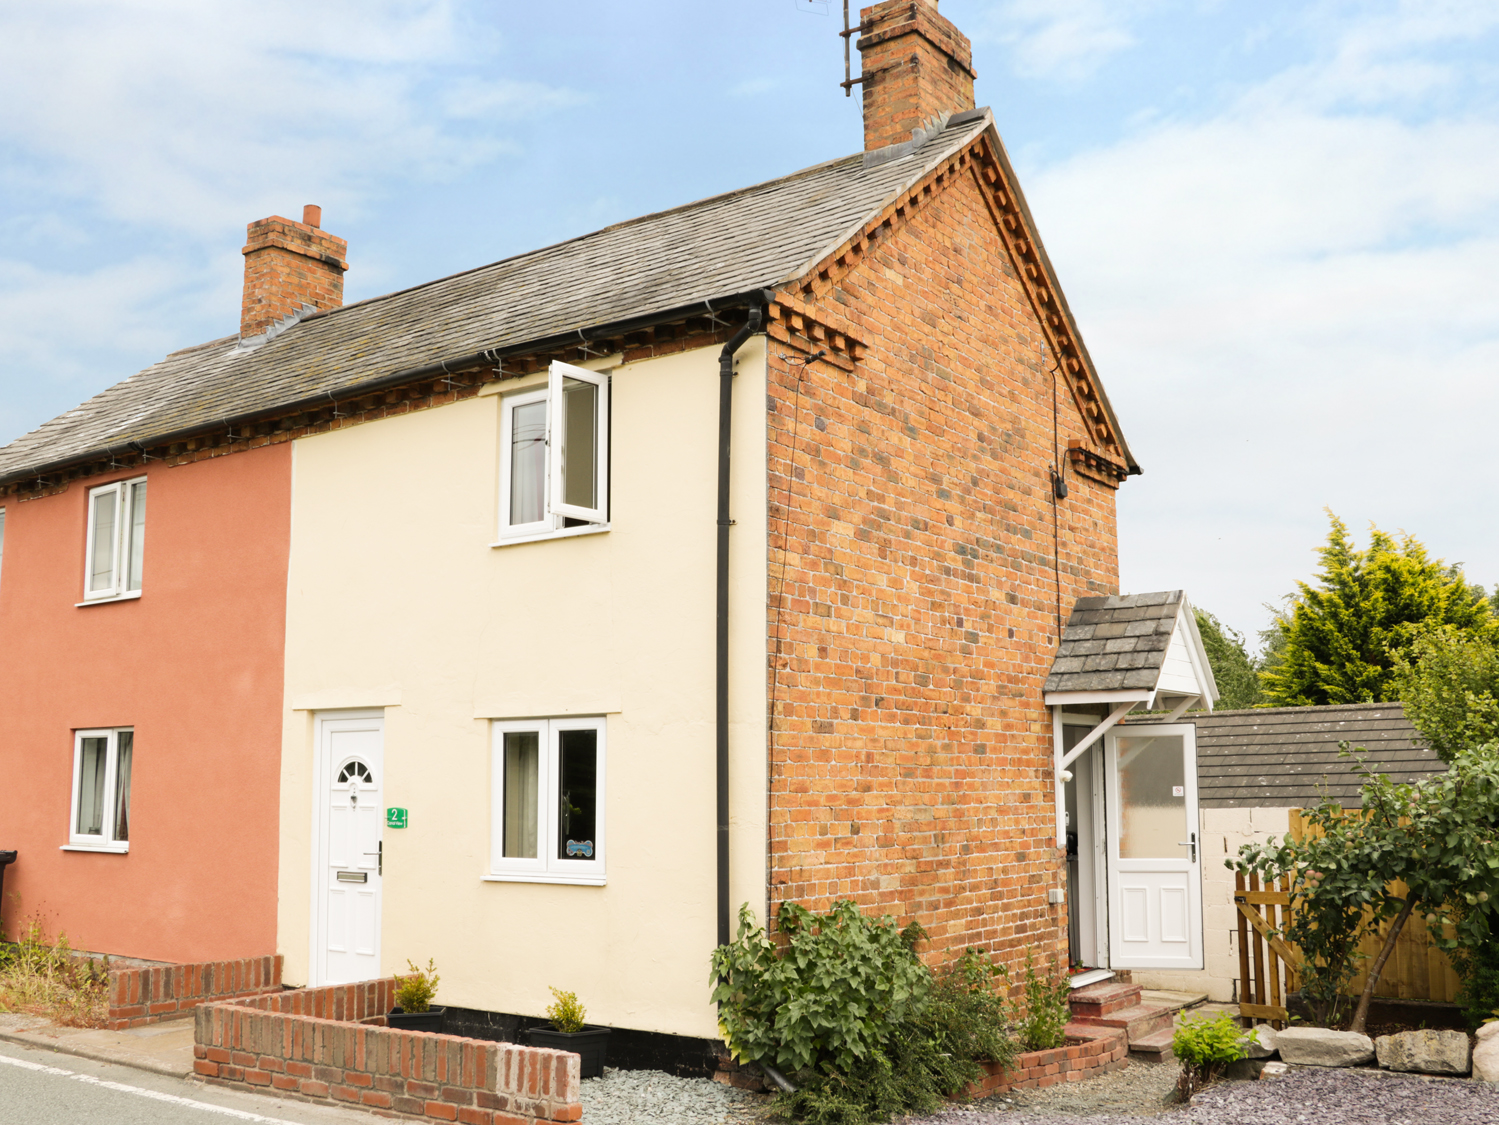 1 bedroom Cottage for rent in Llanymynech